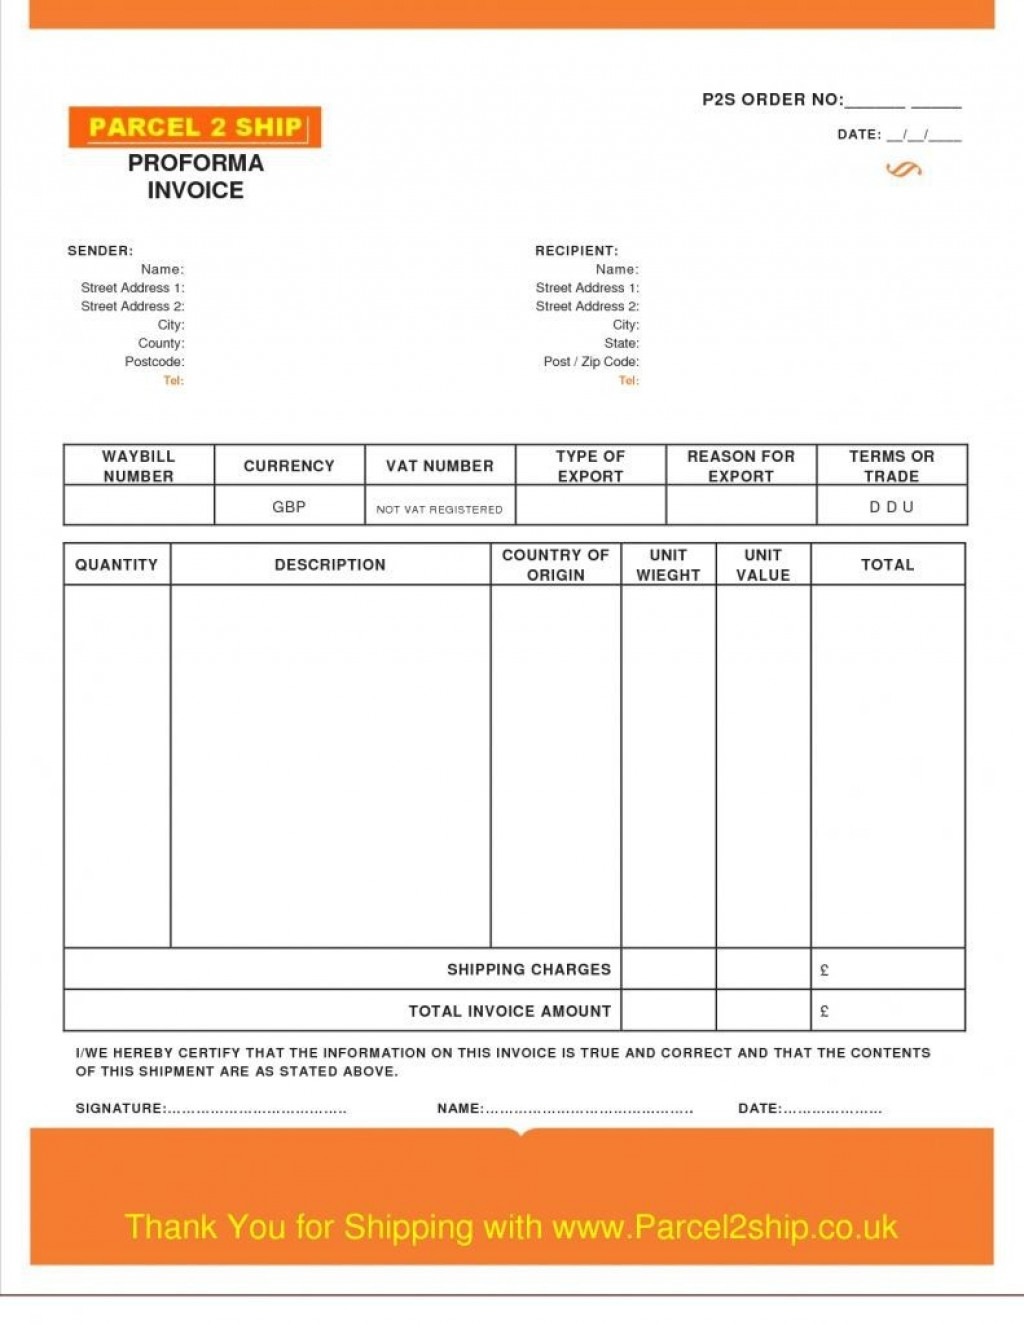 004 Unbelievable Invoice Excel Example Download Inspiration Large